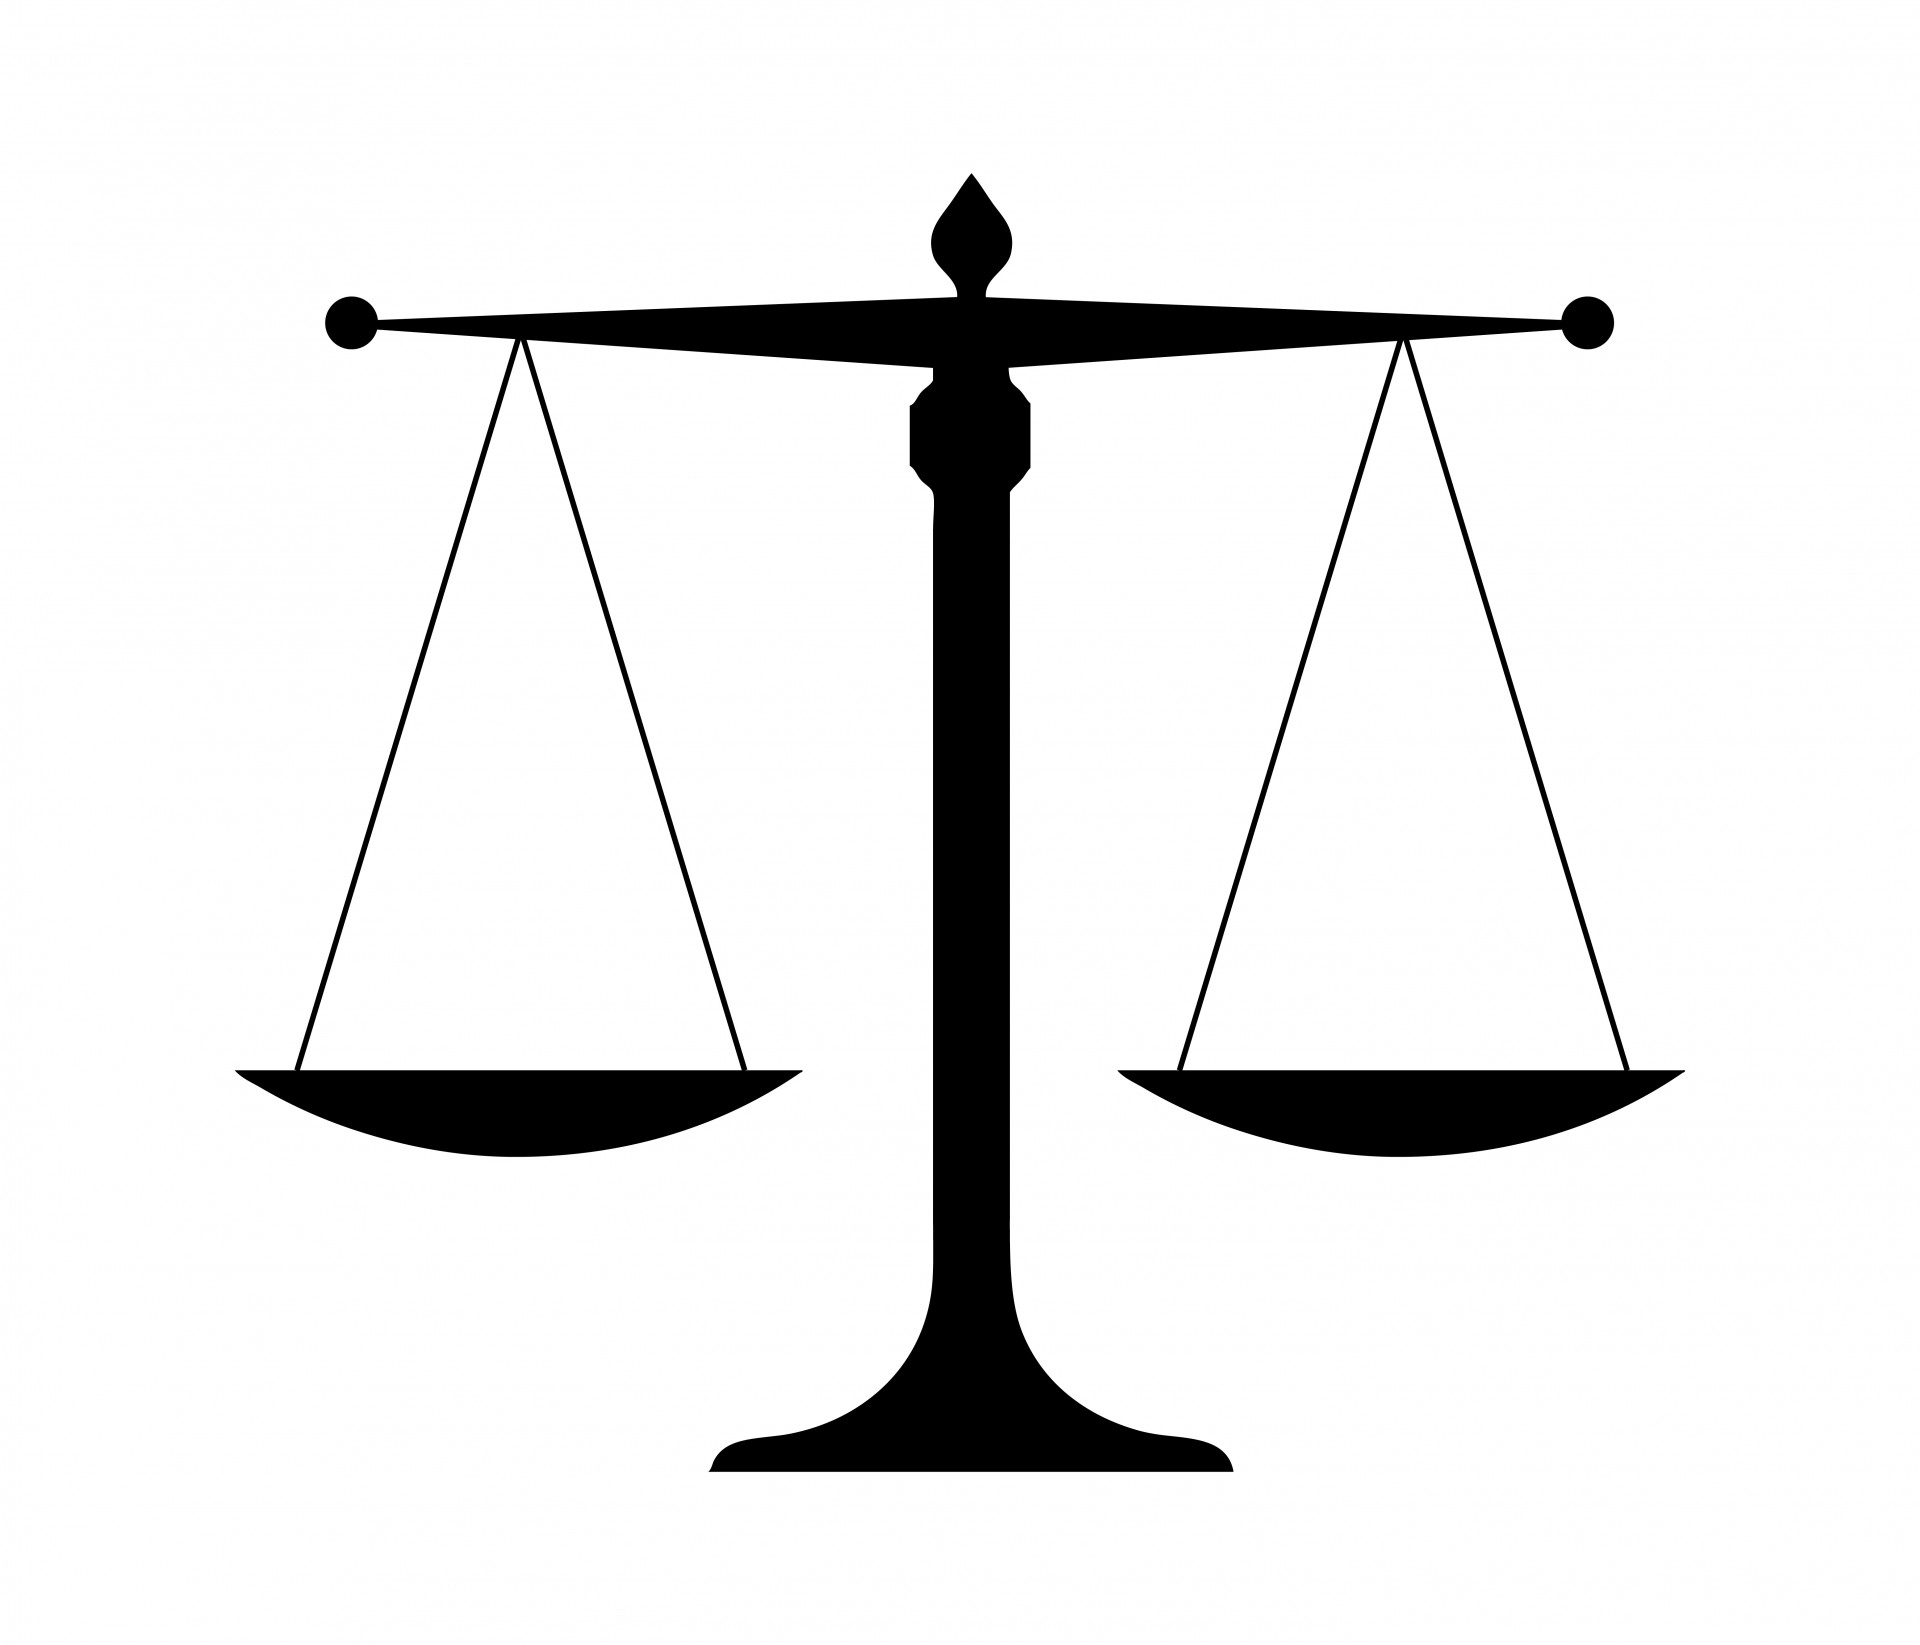 Scales Of Justice Free Stock Photo.